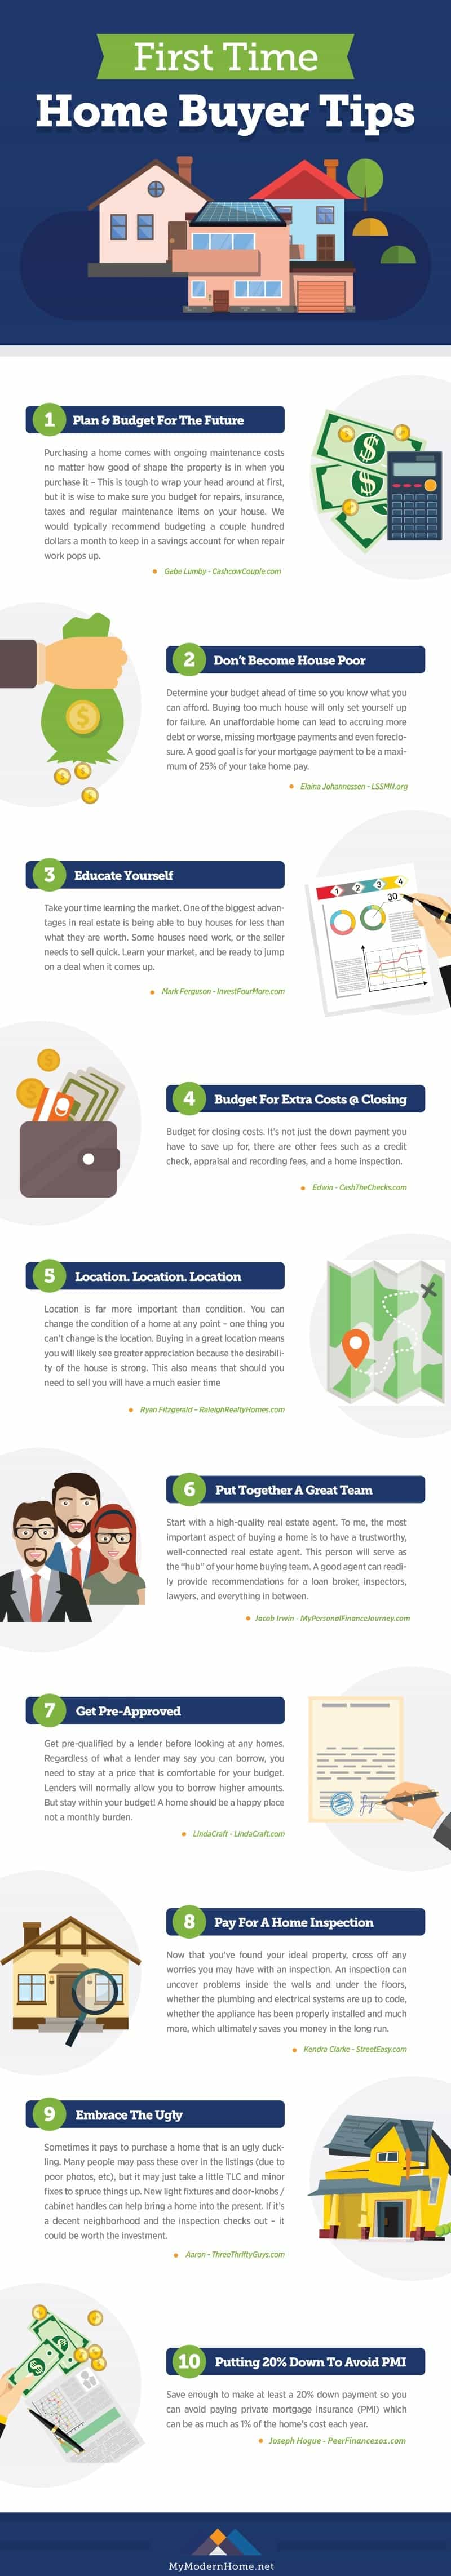 Expert Roundup Results - Best Advice For New Home Buyers Infographic